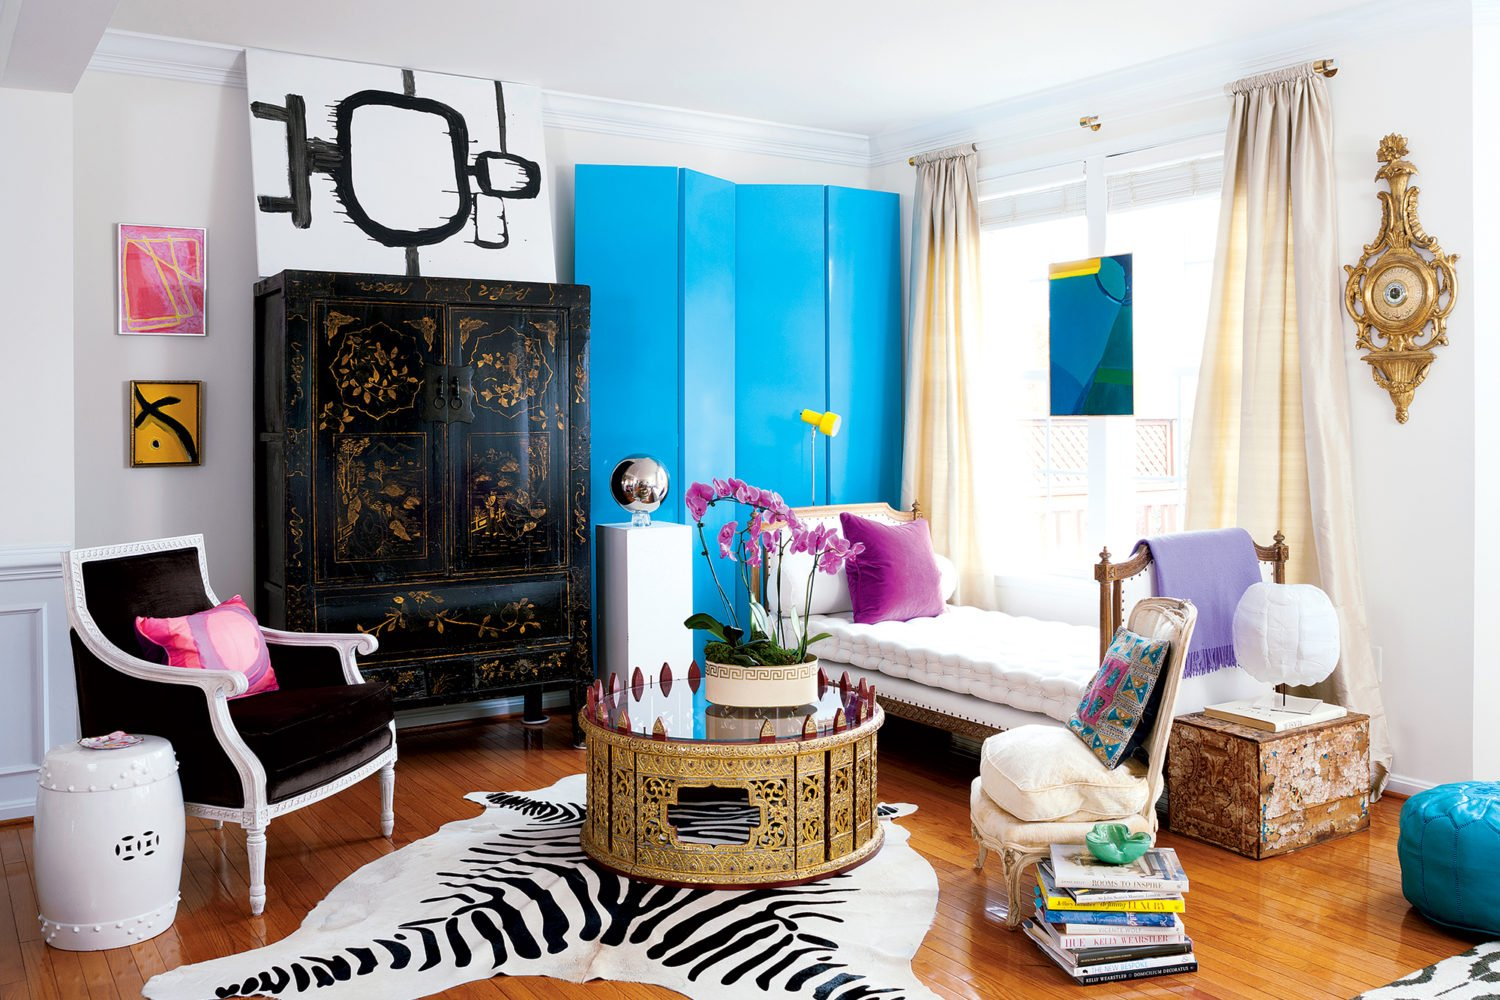 How to Master Maximalist Home Design